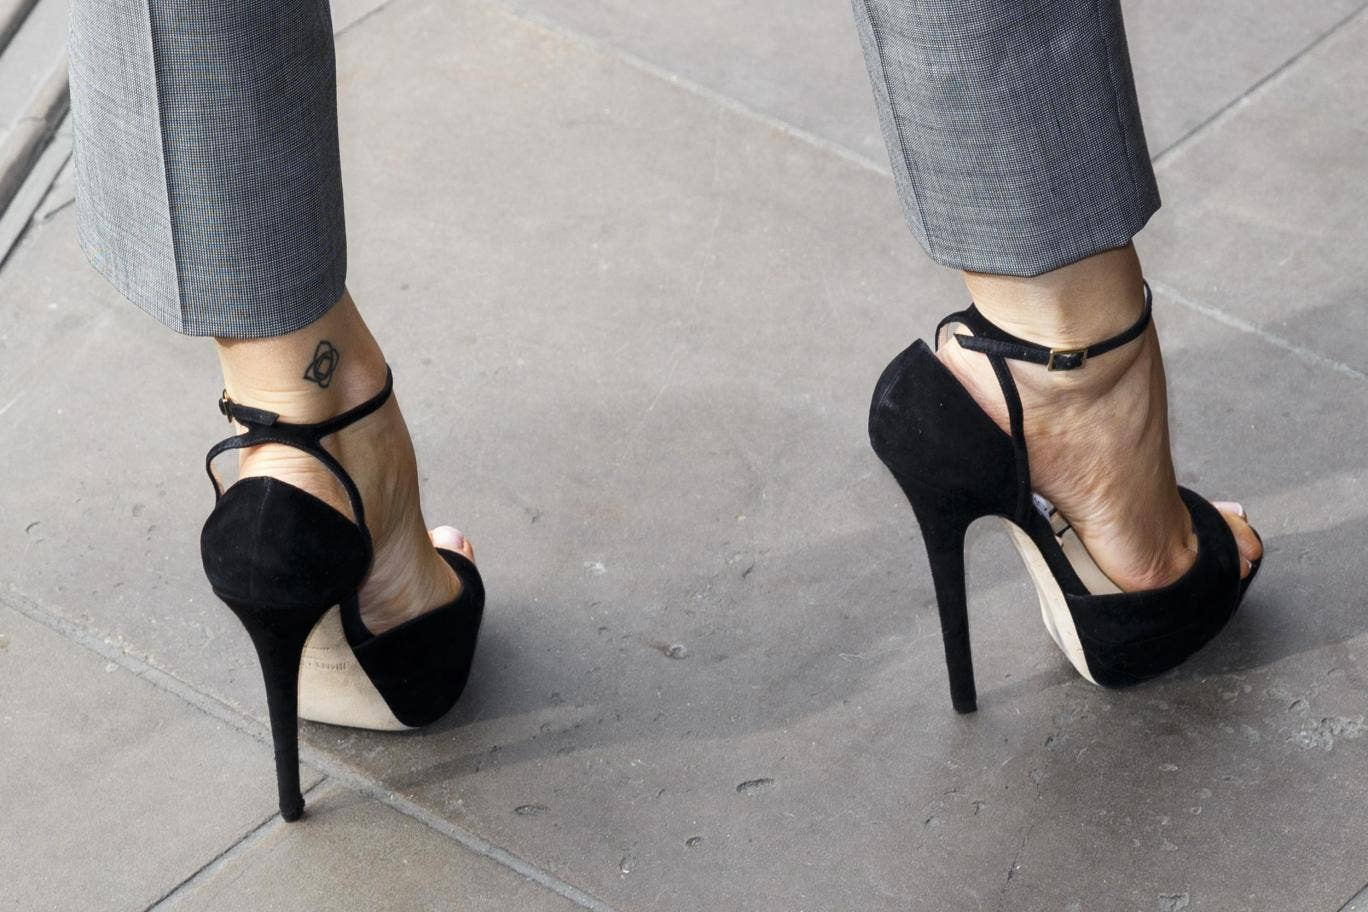 The waitress was forced to put on high heels, and she showed her bloody legs